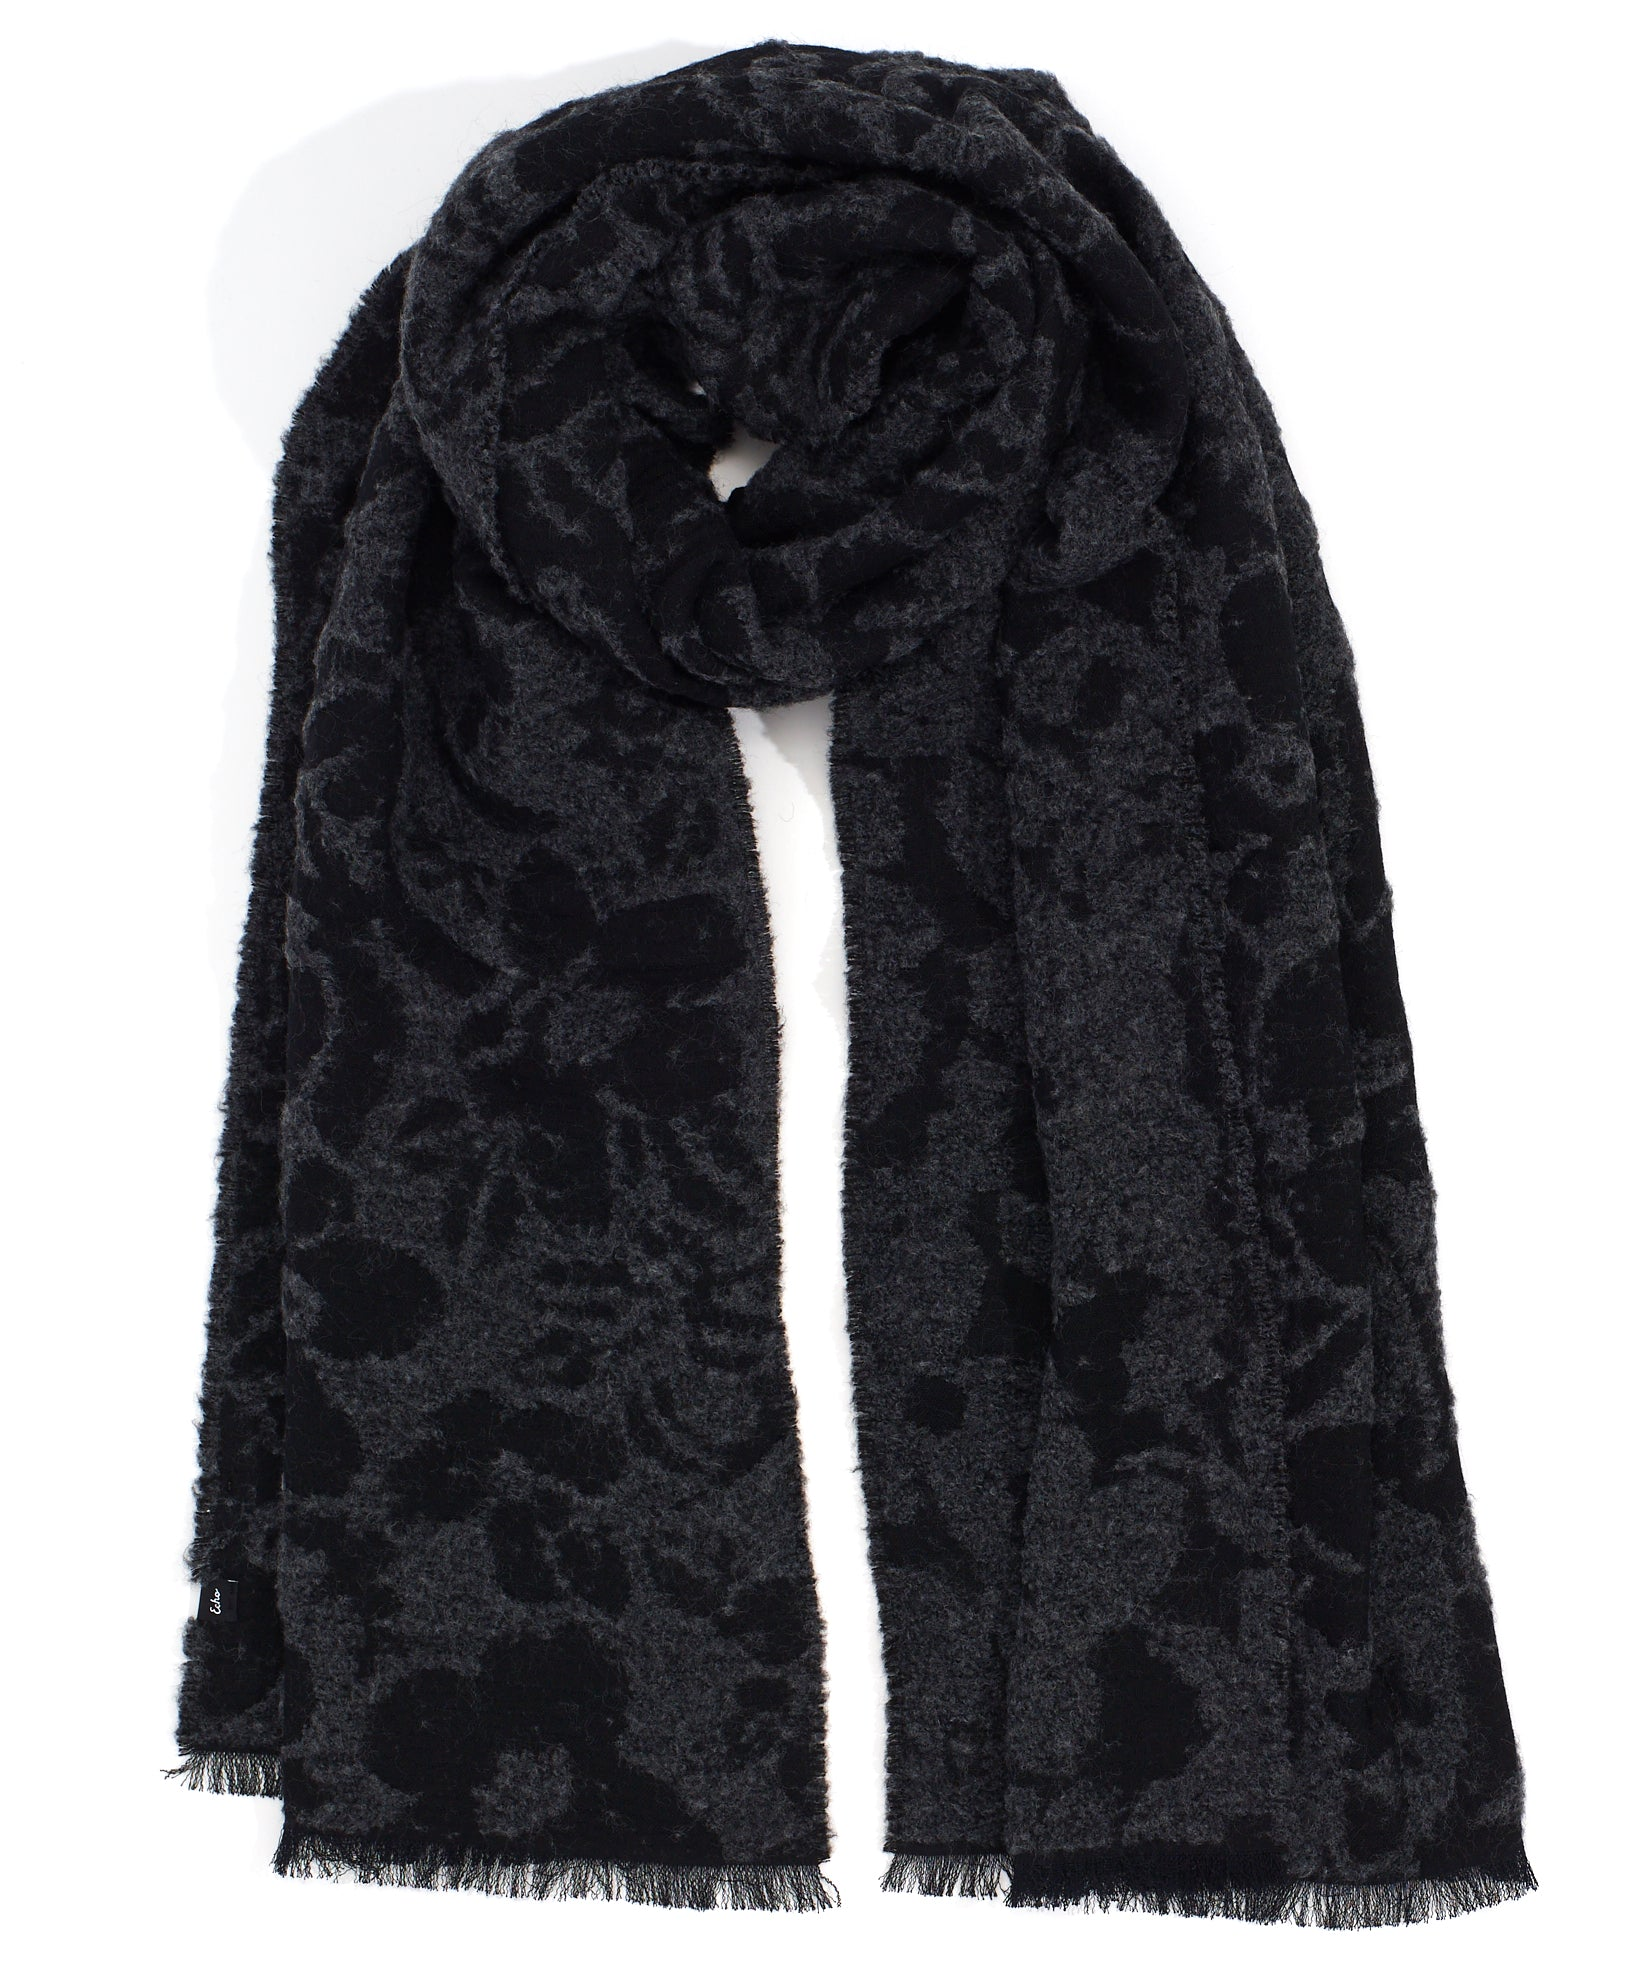 Charcoal - Boucle Flower Scarf